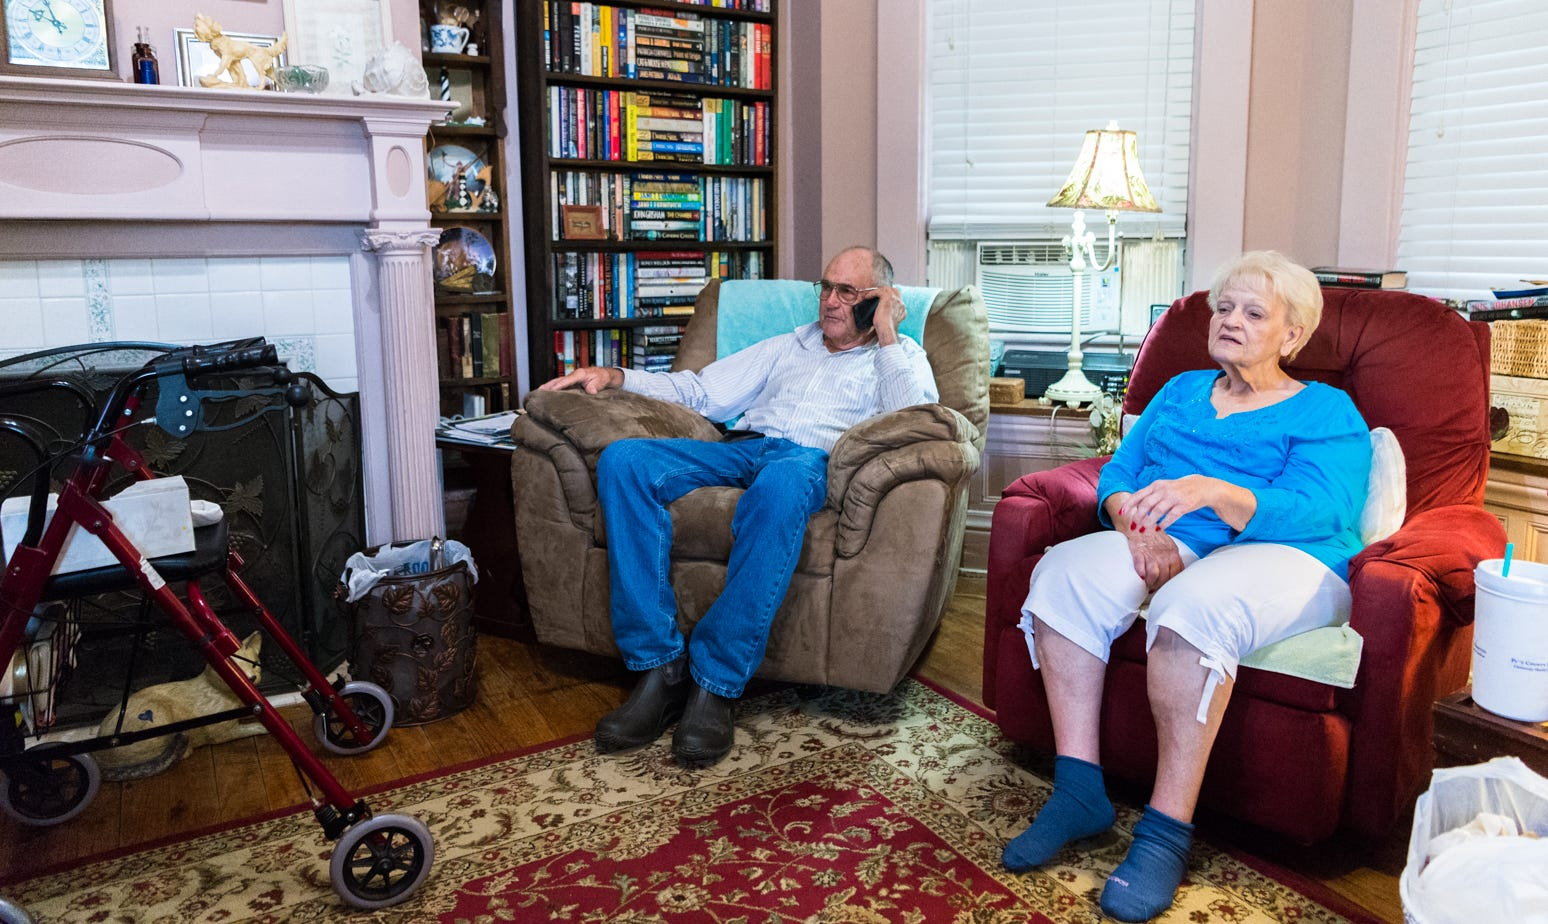 Jimmy Williams, 80 and his wife, Ellen Louise, 79, of Swan Quarter, N.C, will be staying in their home for the duration of Hurricane Florence.